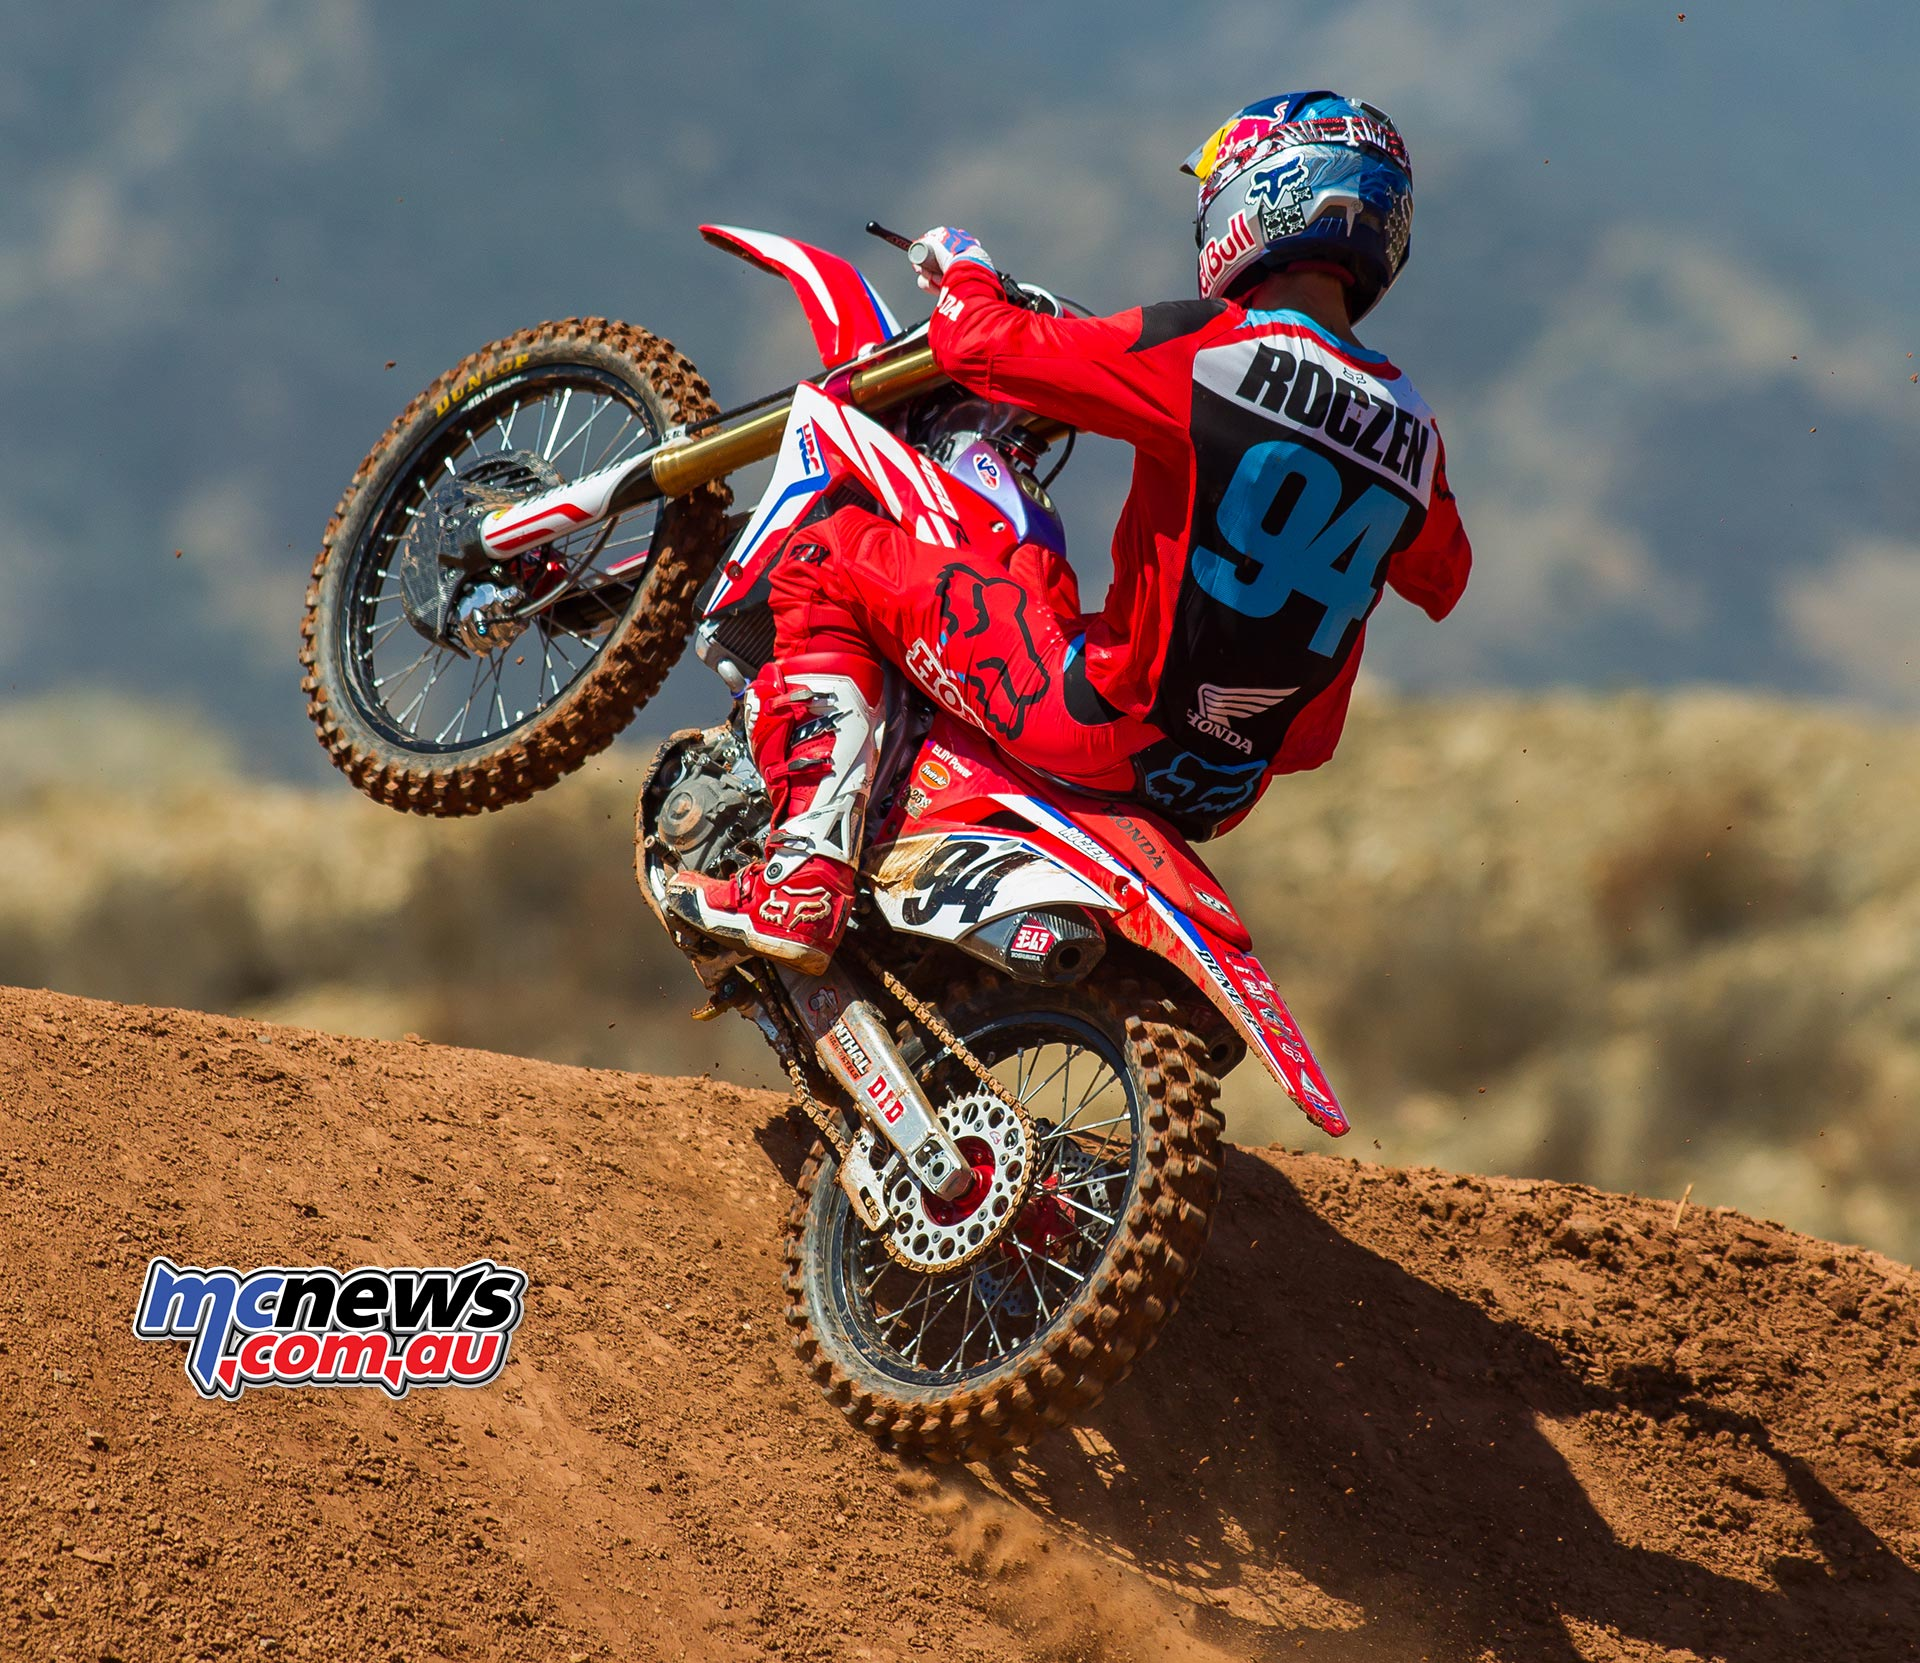 Ken Roczen Signs On For Three Years With Honda Mcnews Com Au